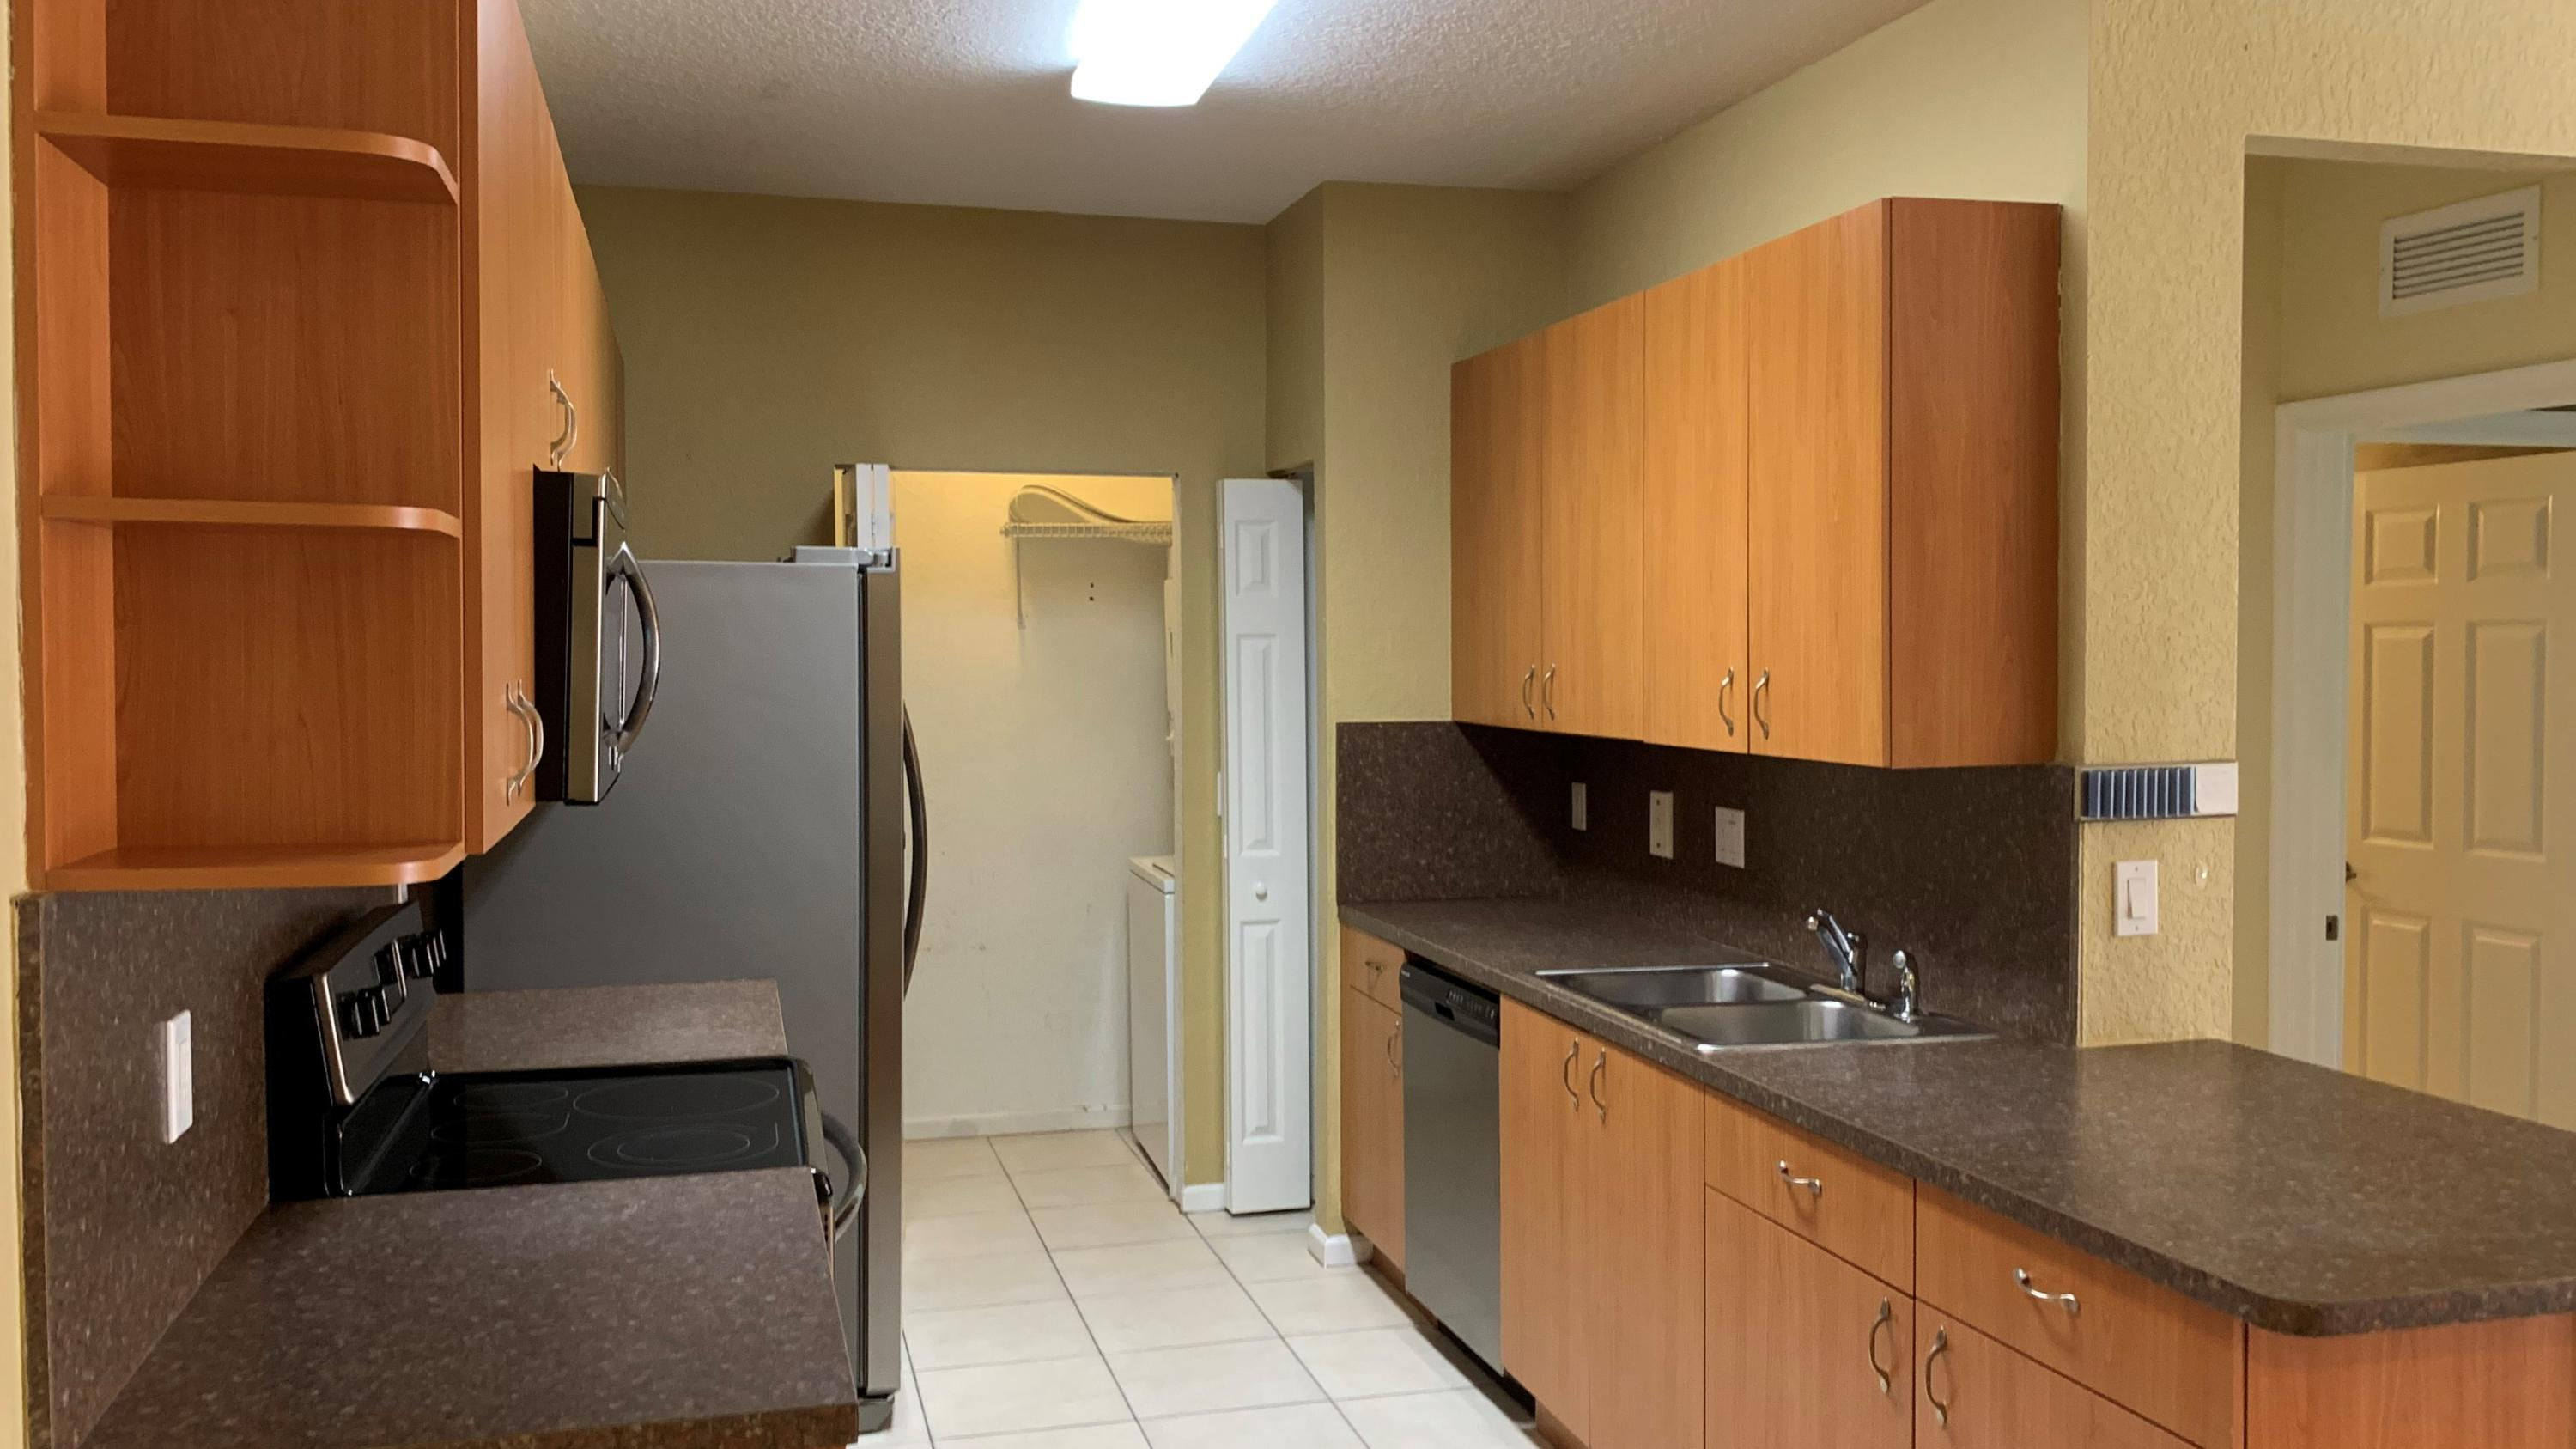 3549 Forest Hill Blvd #17 - 33406 - FL - Palm Springs